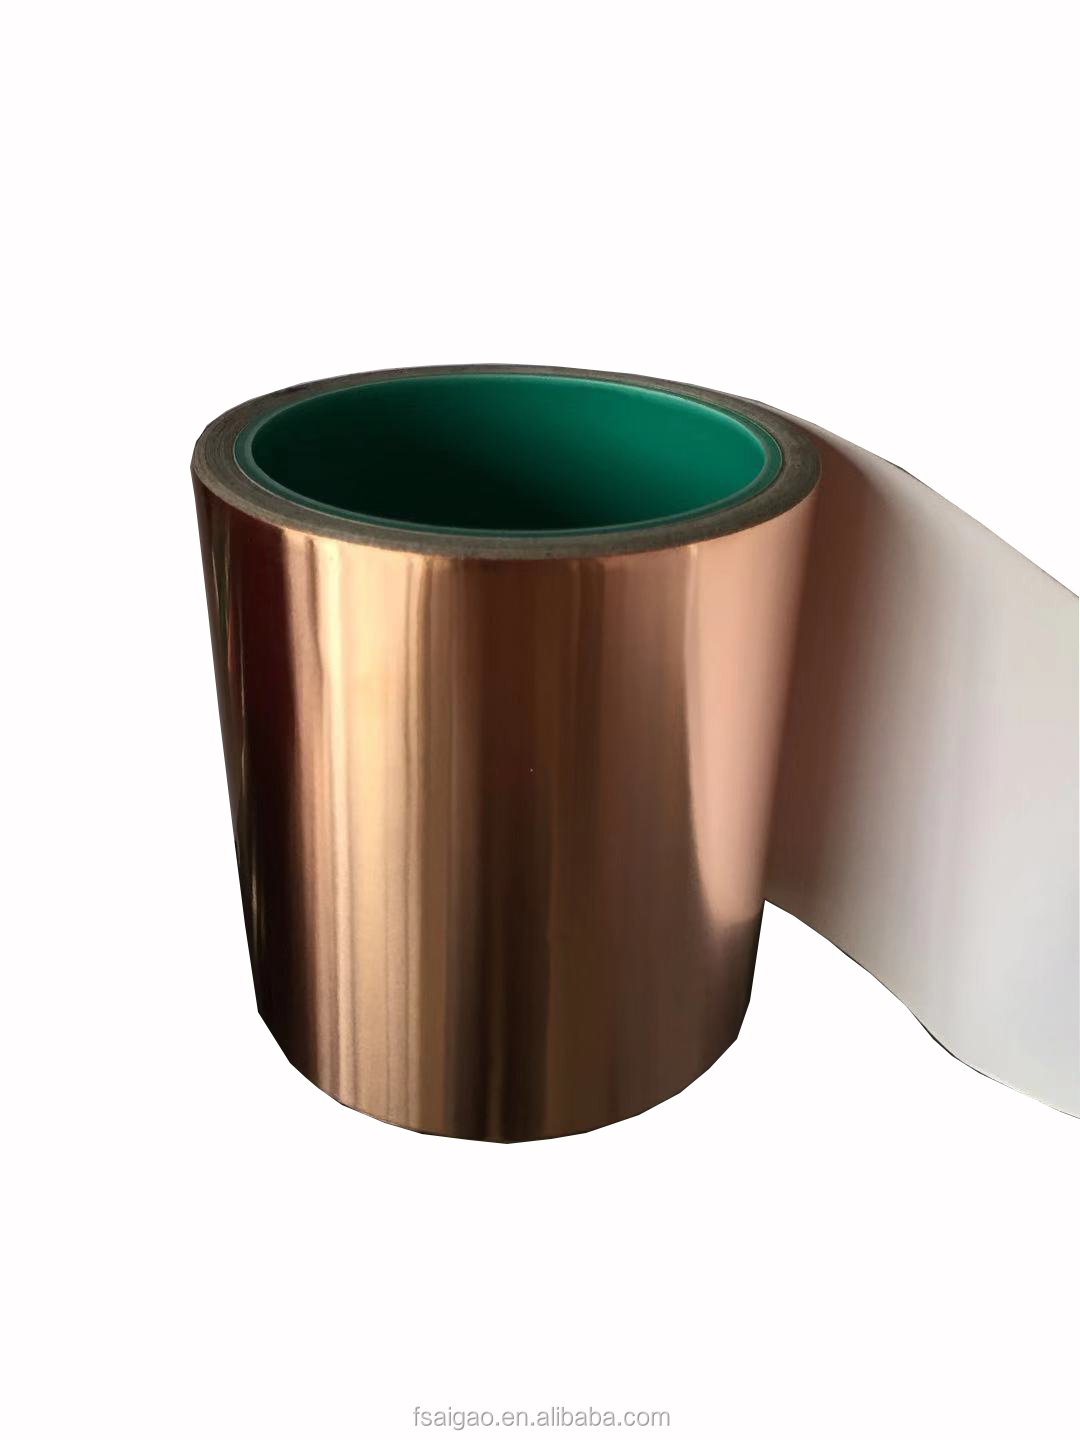 Custom Single Sided Adhesive emi shielding 0.06mm Copper foil emi absorbing shielding material